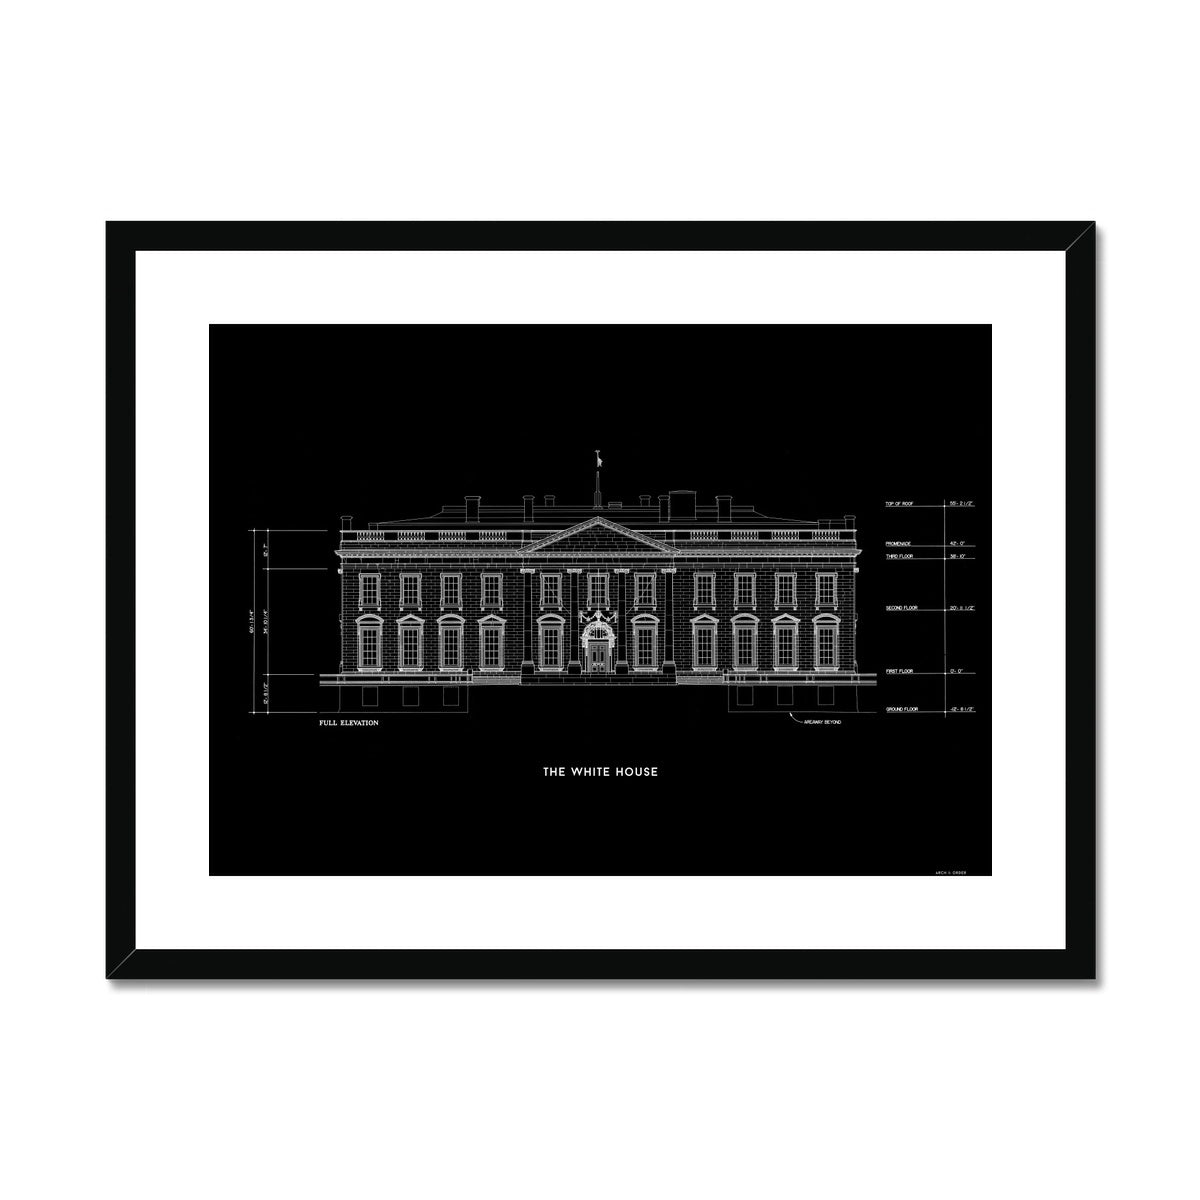 The White House North Elevation - Black -  Framed & Mounted Print